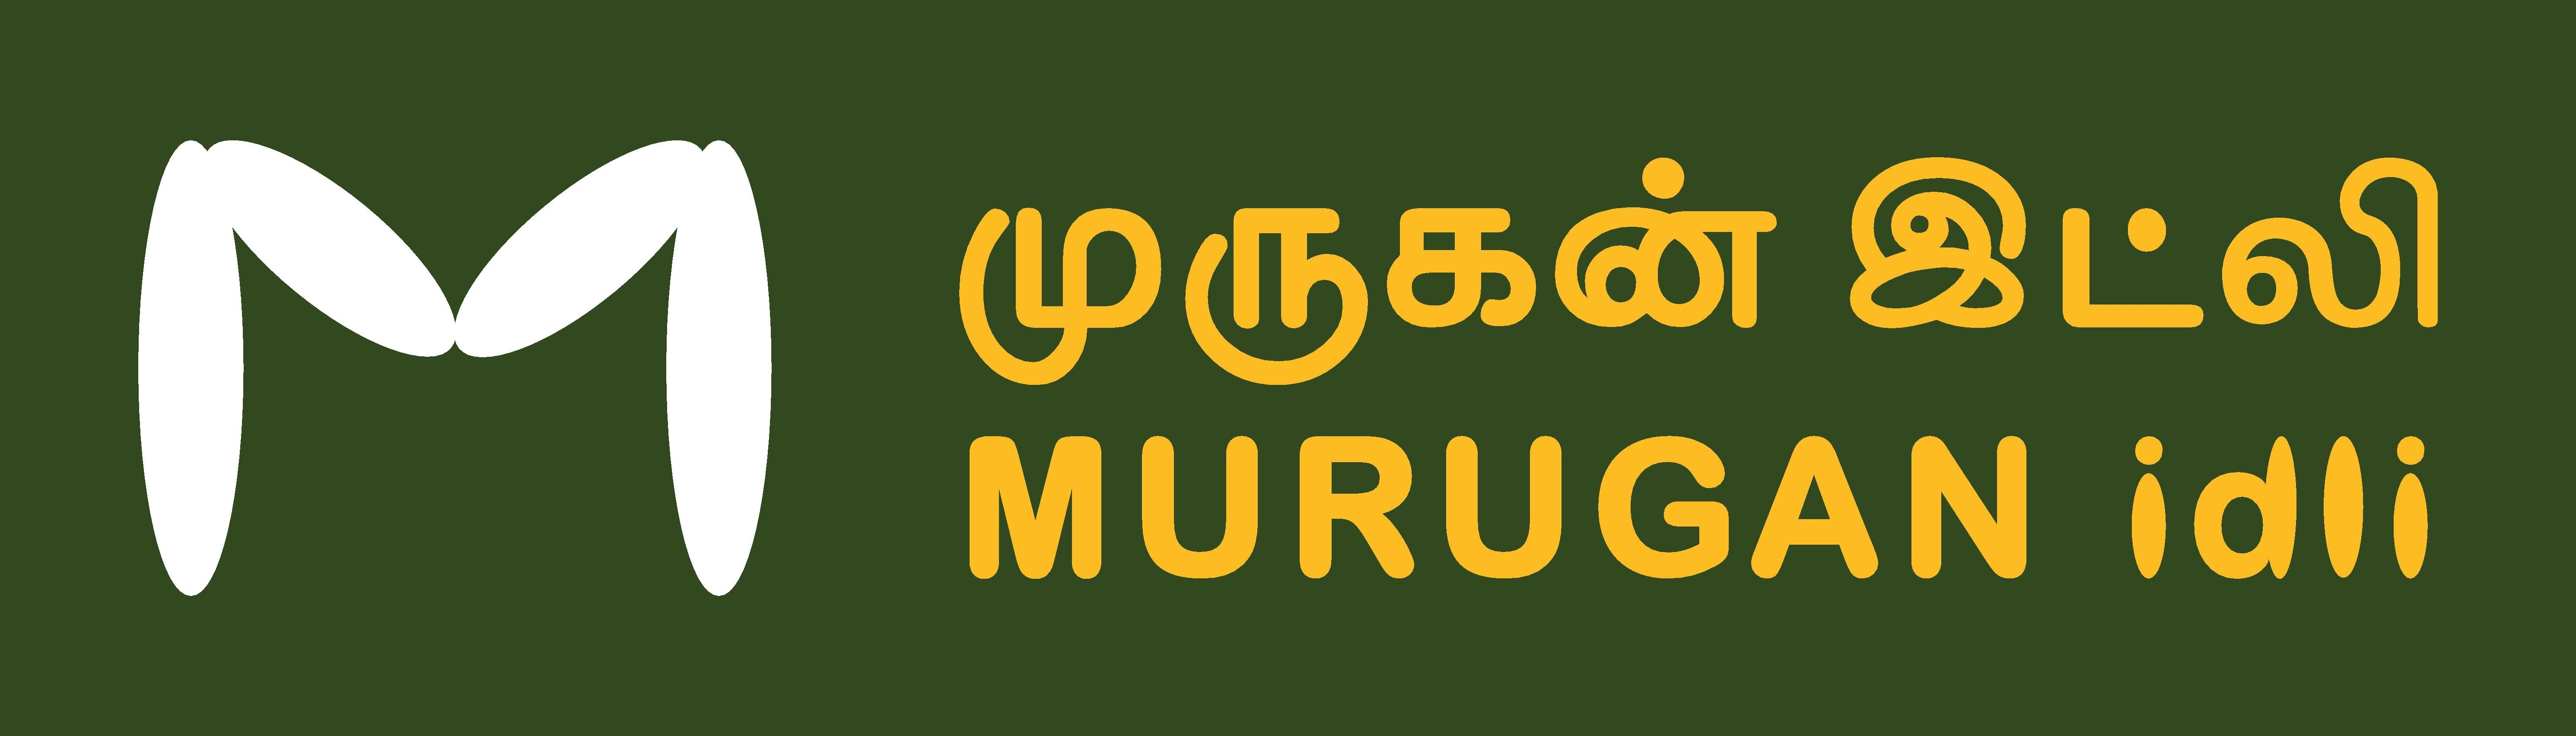 Murugan Idly Shop